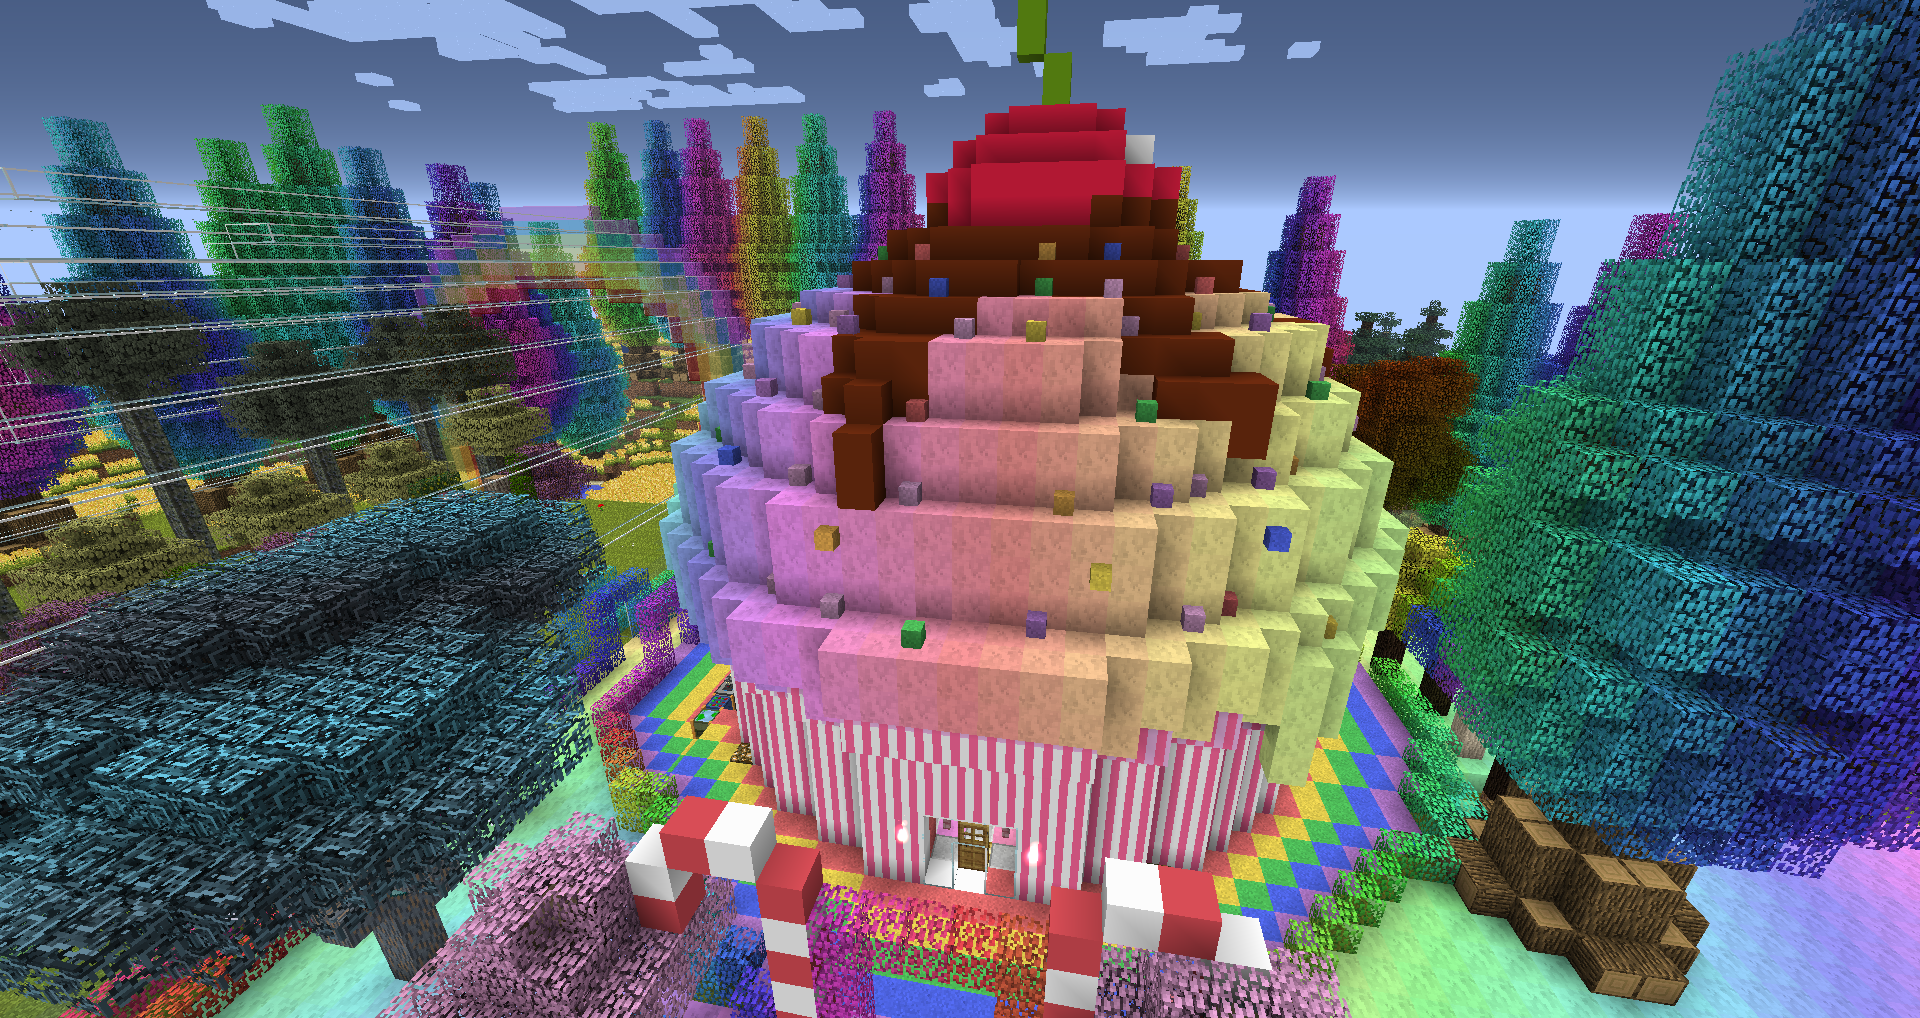 Bringing rainbows to minecraft cilitra 2014 03 19023427 ccuart Images